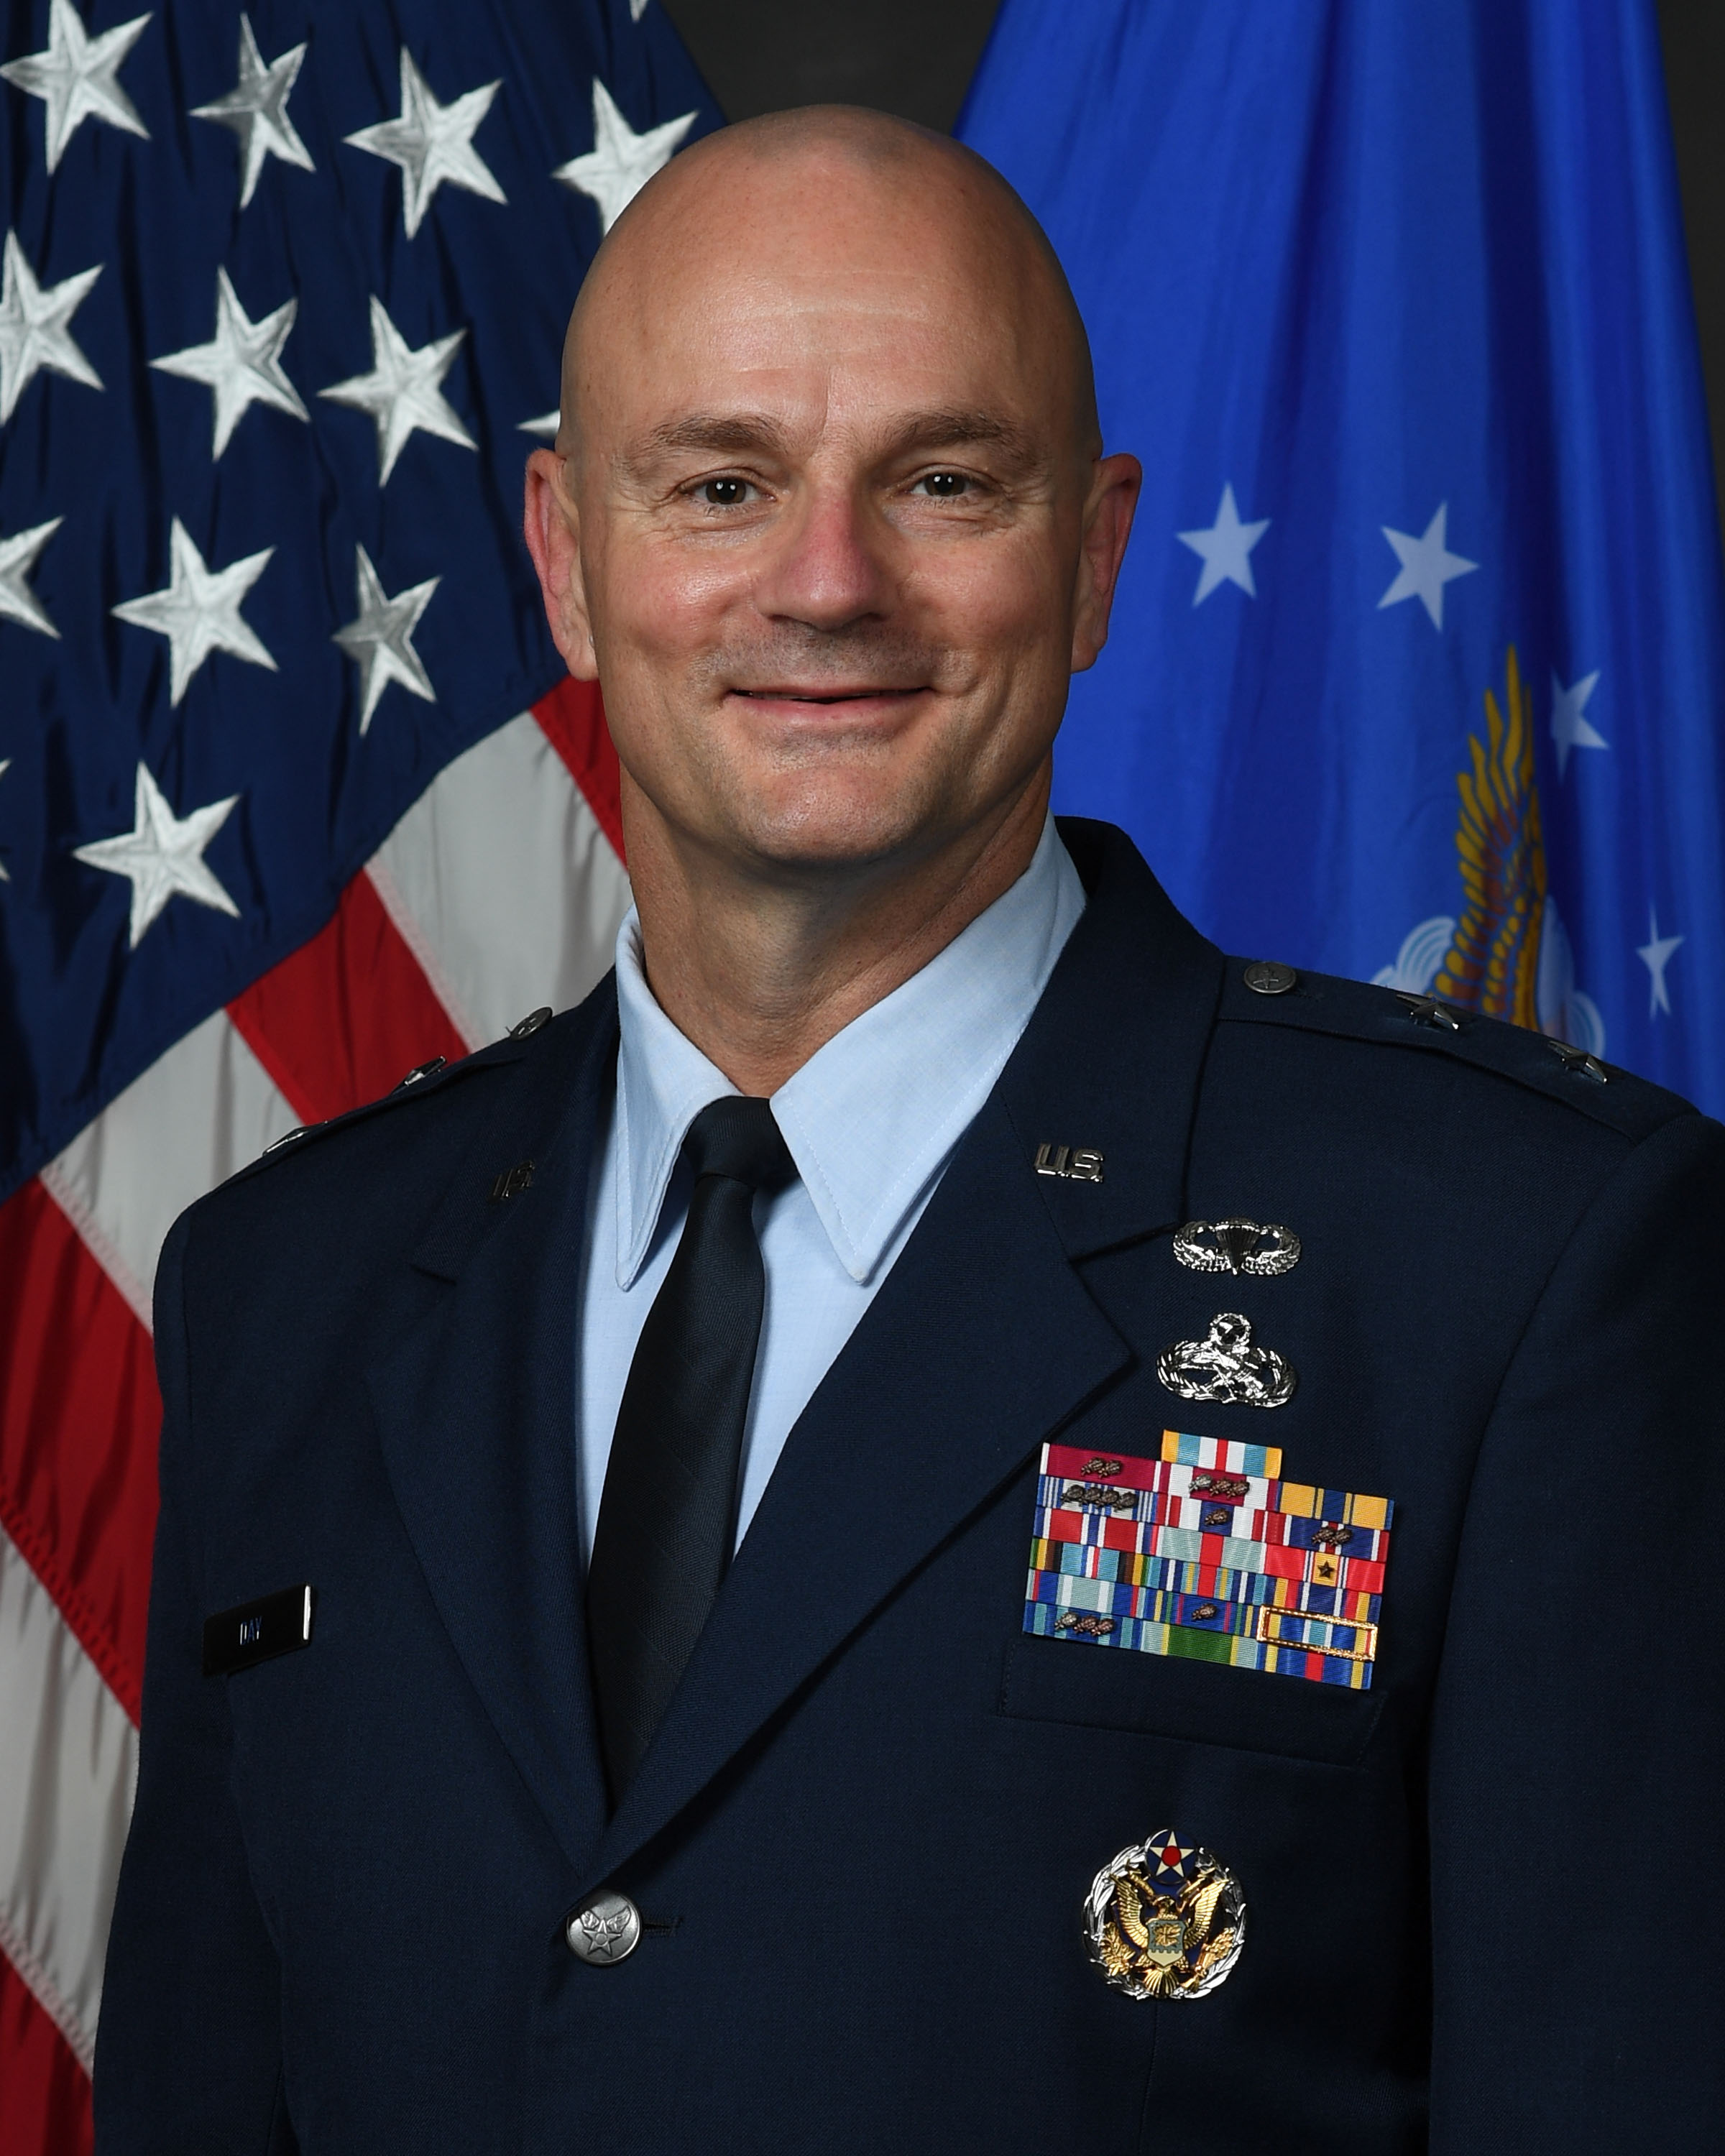 Air Force Major General Allan E. Day